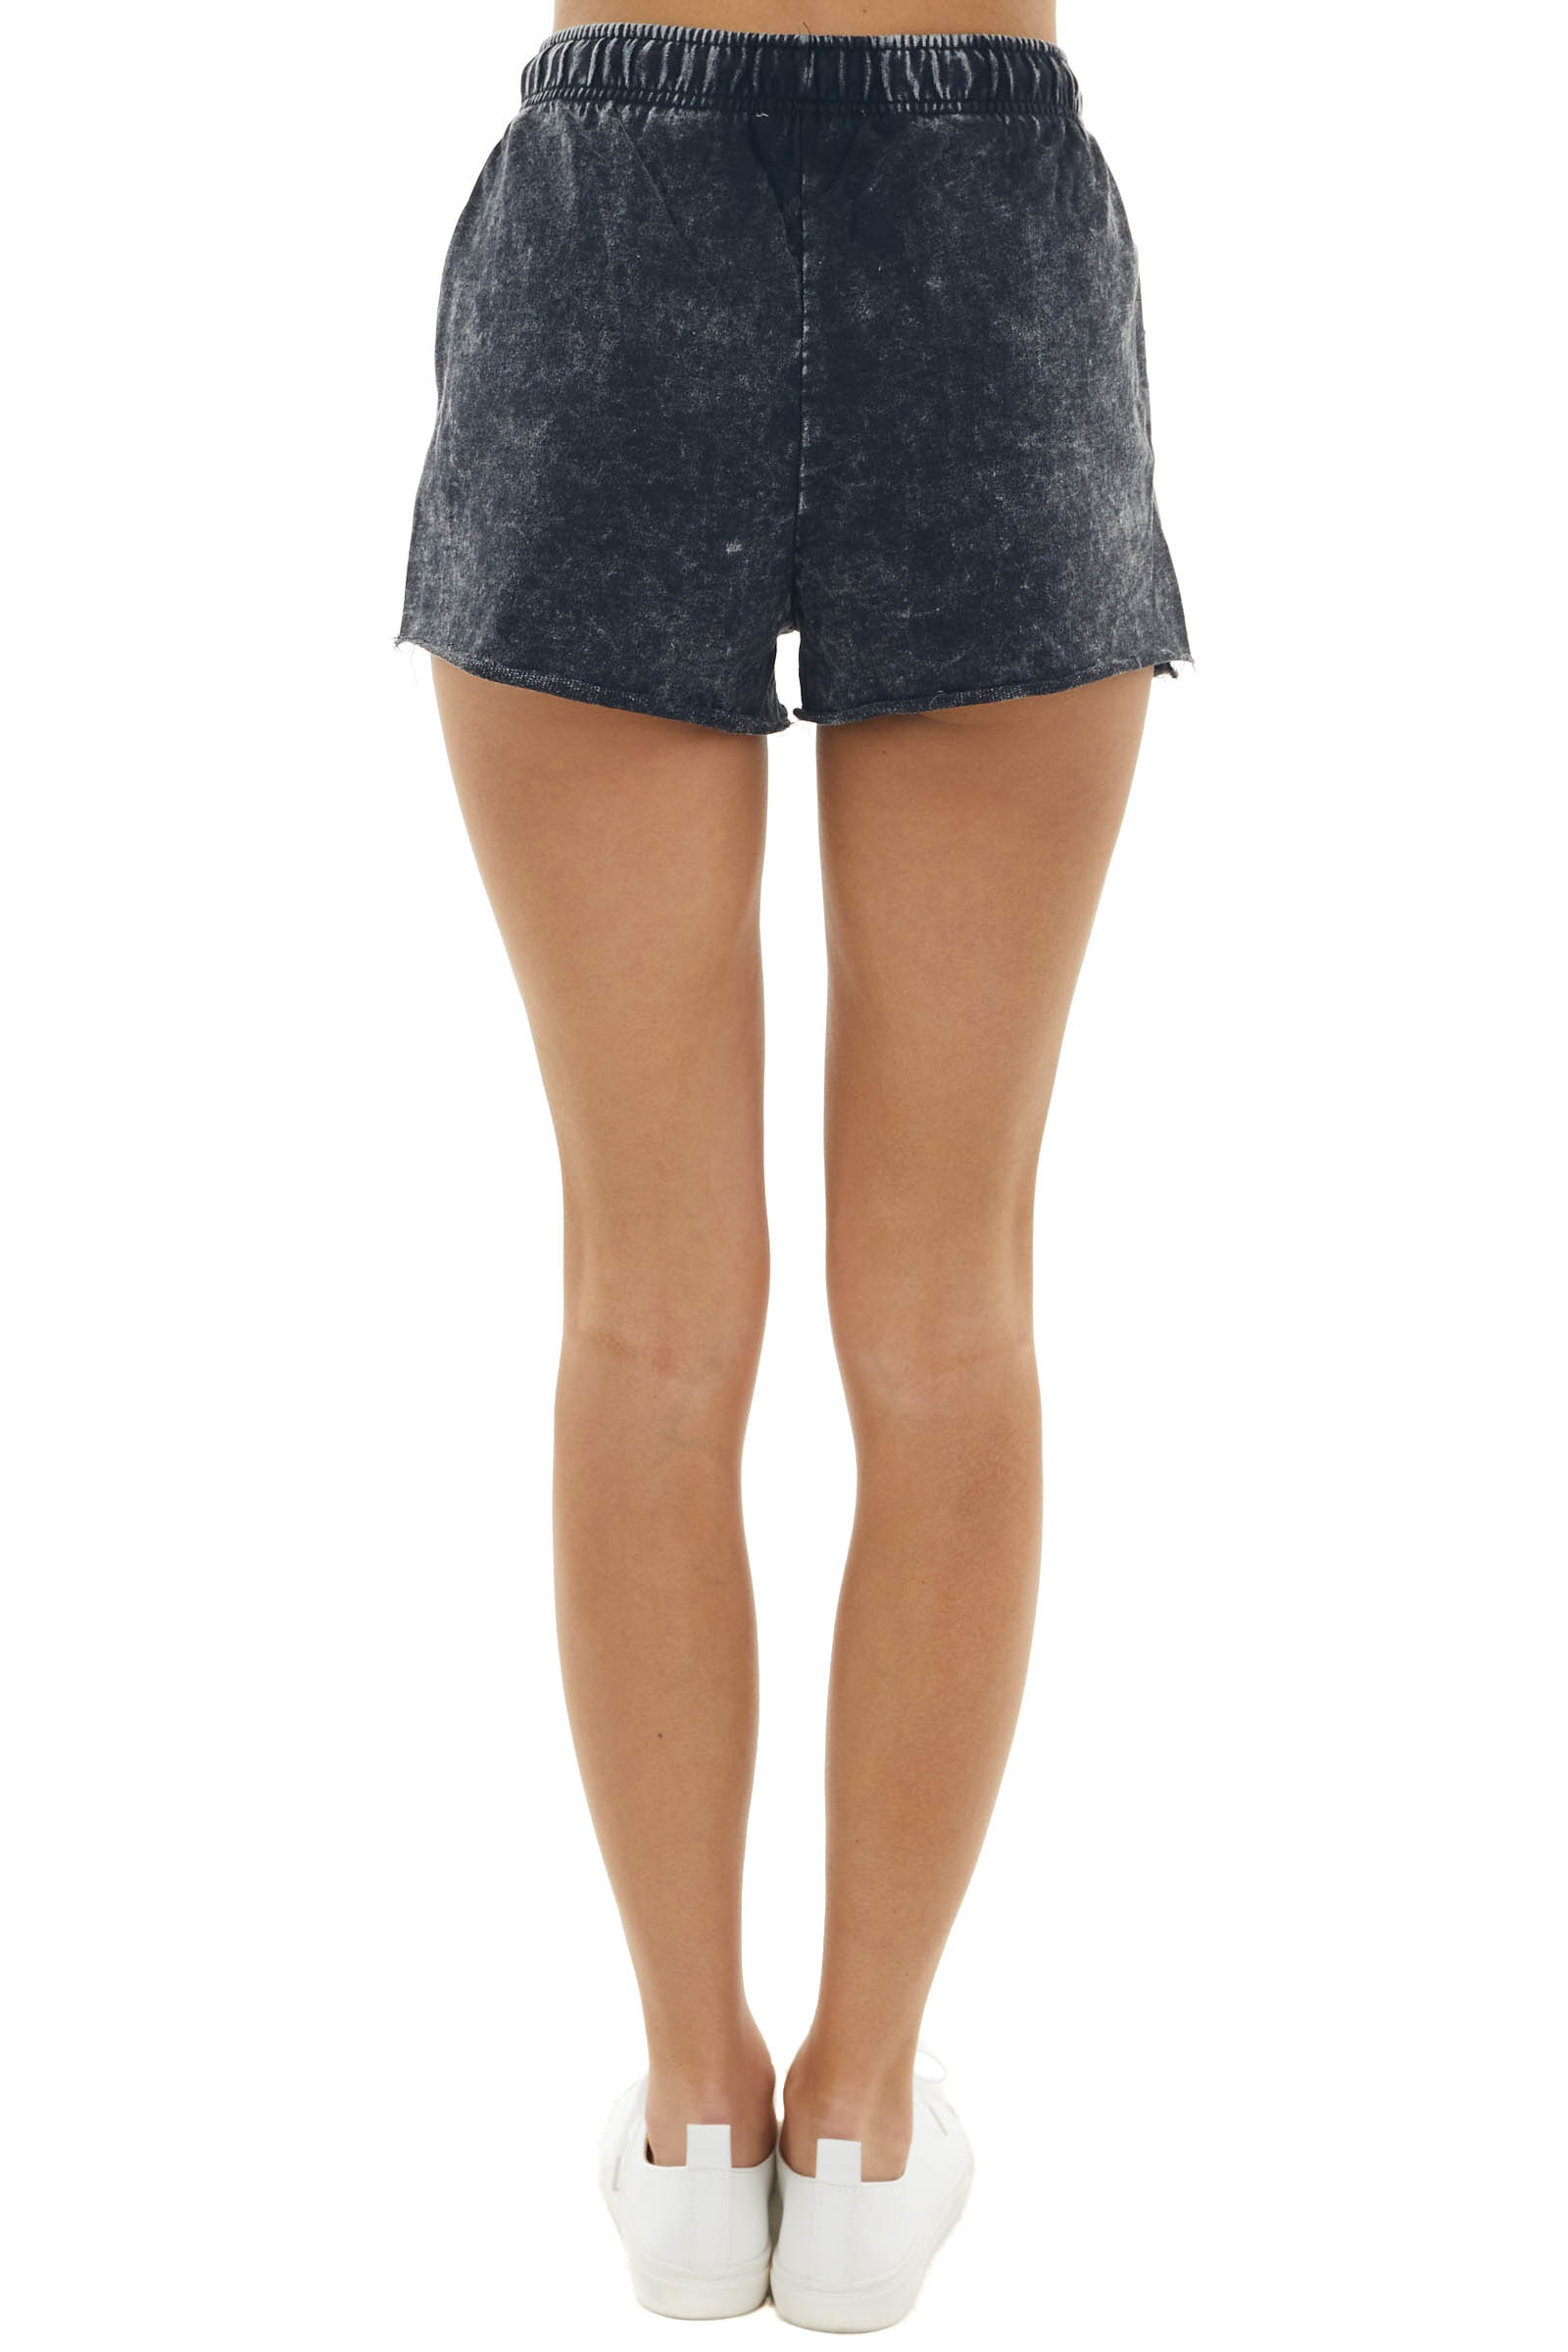 Black Mineral Wash Raw Hem Drawstring Shorts with Pockets